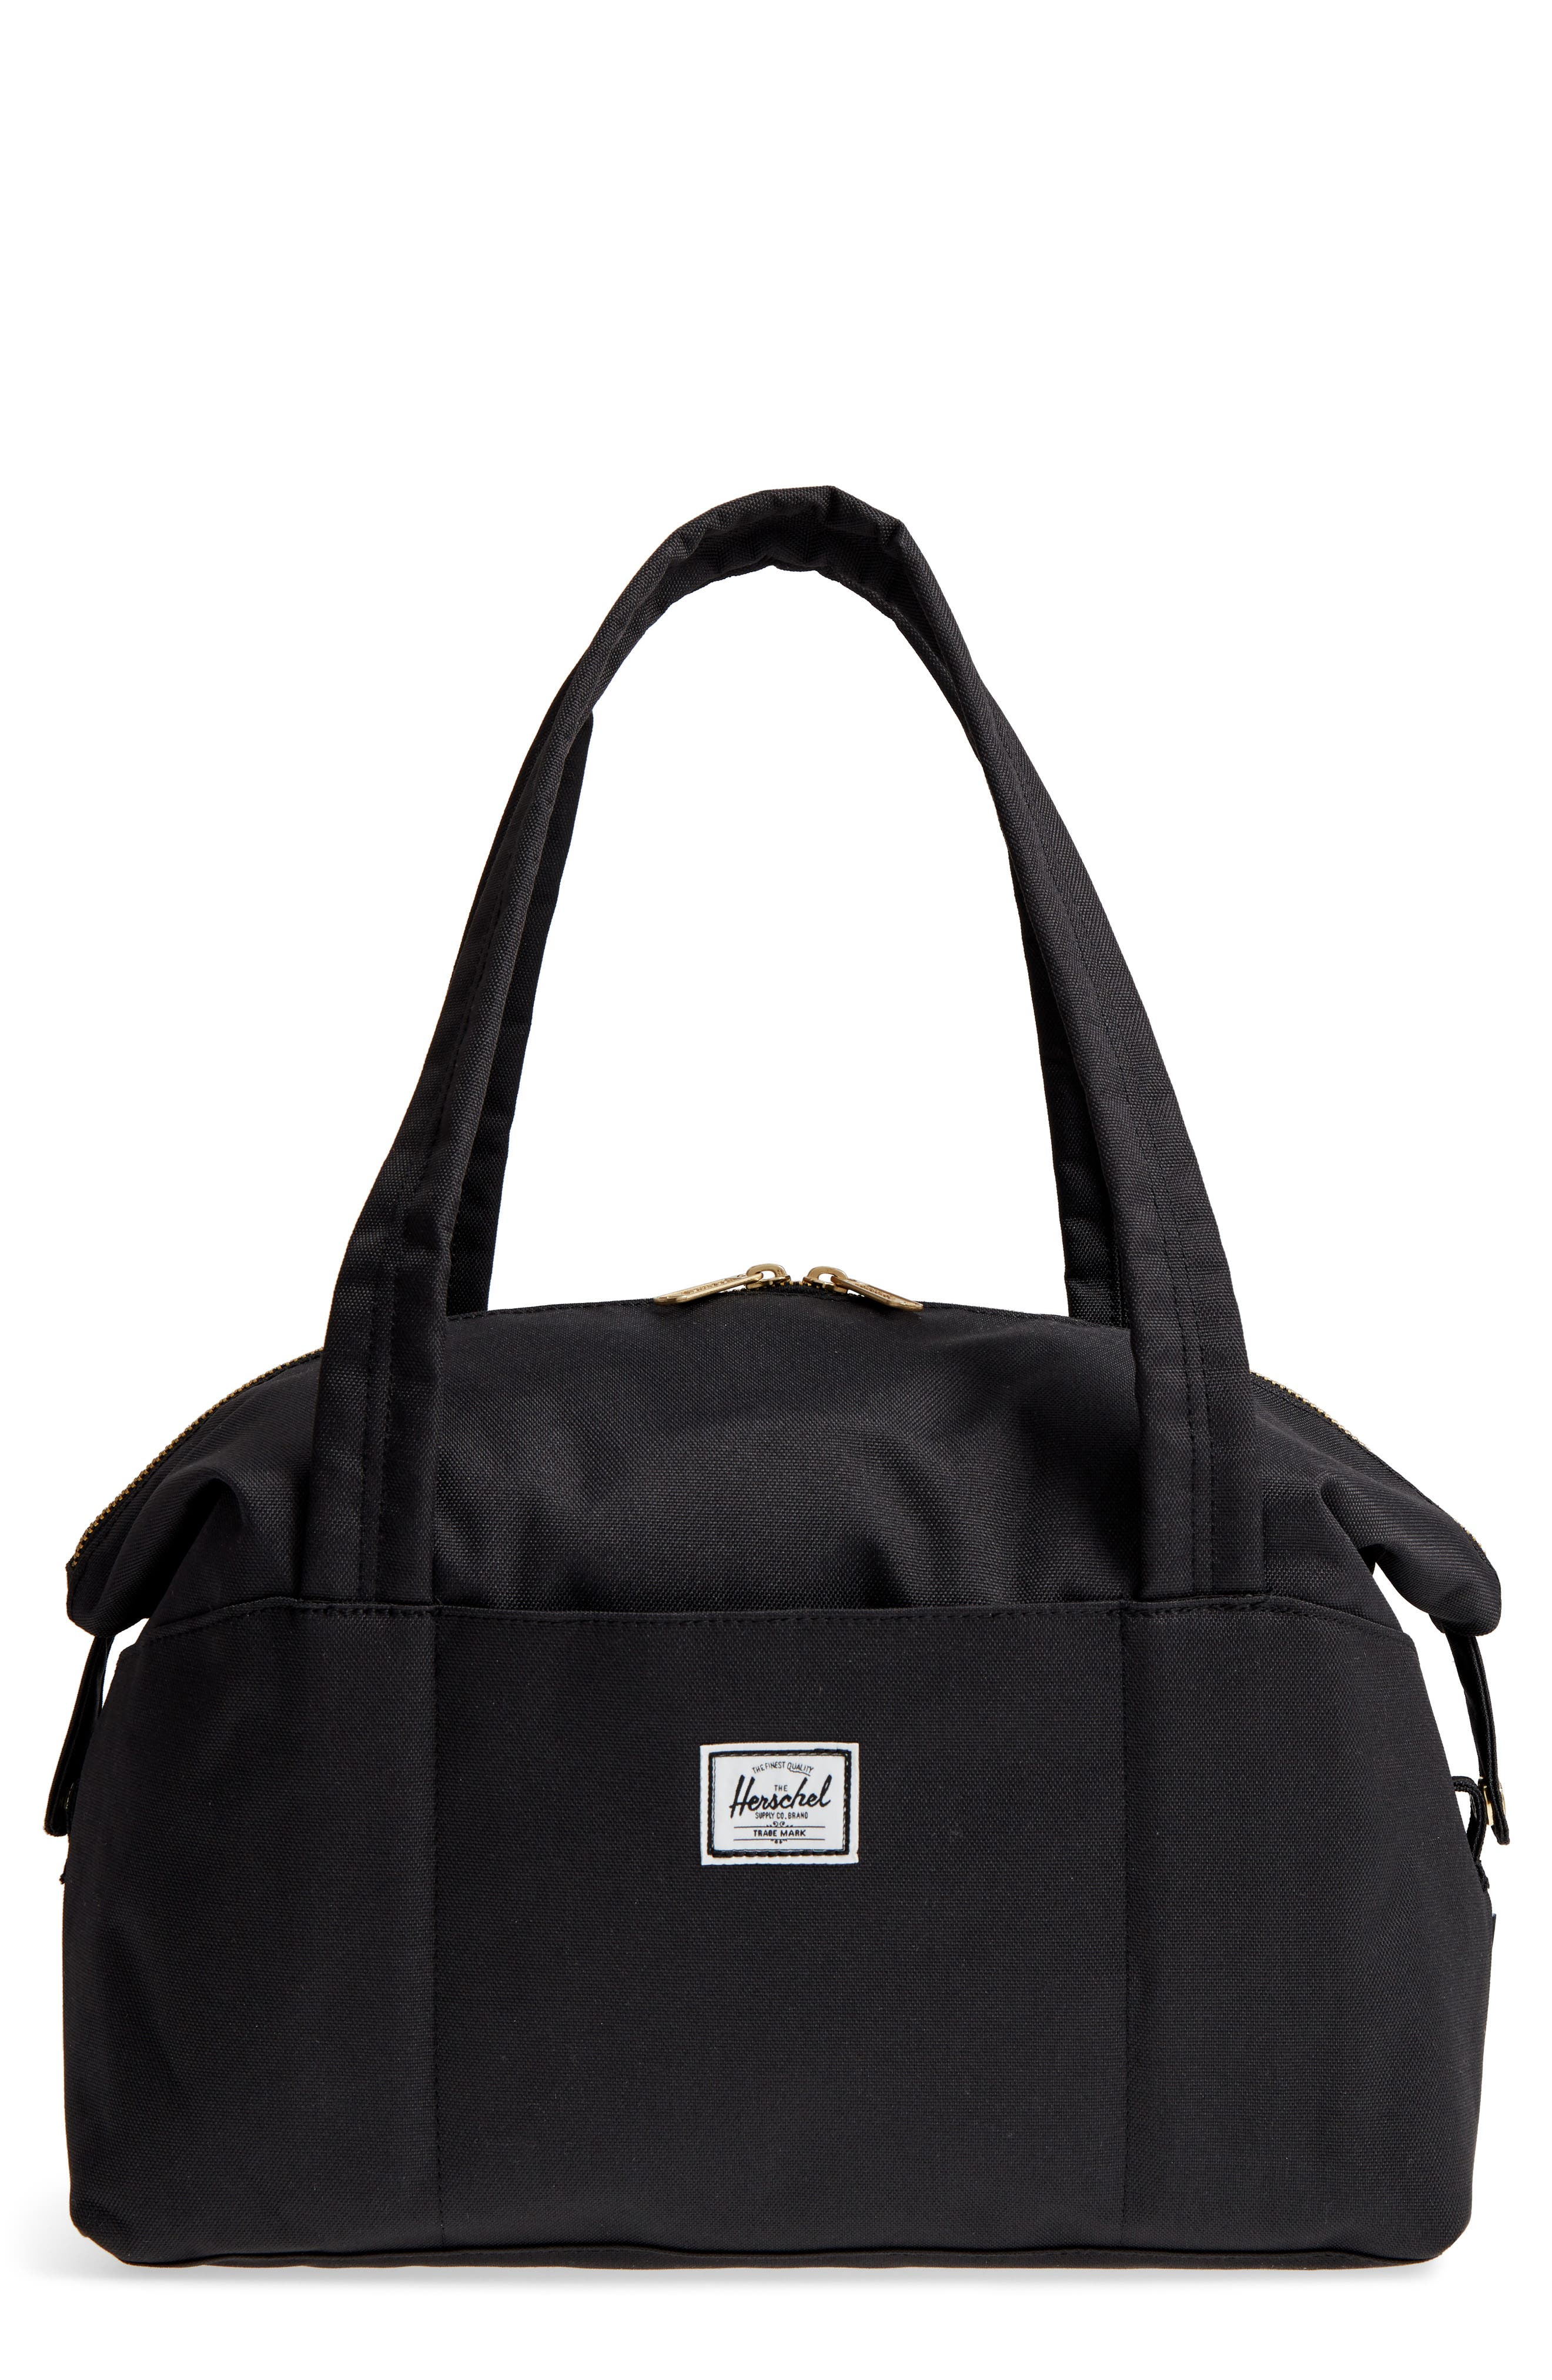 HERSCHEL SUPPLY CO. Extra Small Strand Duffle Bag, Main, color, BLACK